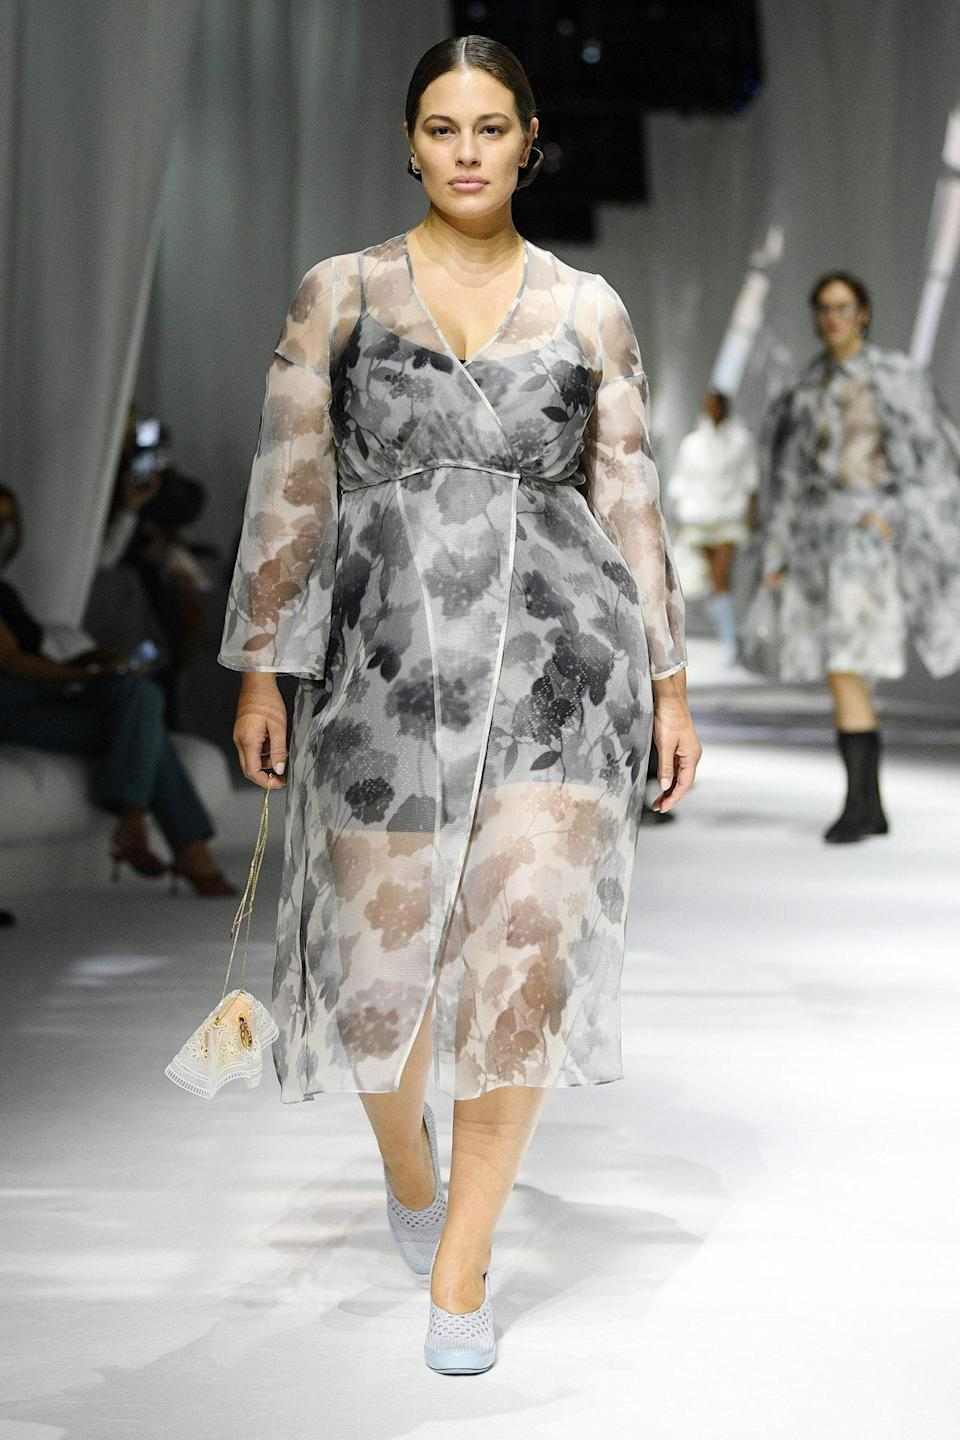 """<p>Fendi's Spring/Summer 2021 presentation marked the <a href=""""https://people.com/style/new-york-fashion-week-photos-september-2020/"""" rel=""""nofollow noopener"""" target=""""_blank"""" data-ylk=""""slk:first live show"""" class=""""link rapid-noclick-resp"""">first live show</a> of the season, where models (<a href=""""https://people.com/style/ashley-graham-walks-at-fendi-show-in-milan/"""" rel=""""nofollow noopener"""" target=""""_blank"""" data-ylk=""""slk:like Ashley Graham"""" class=""""link rapid-noclick-resp"""">like Ashley Graham</a>) walked the runway sans masks.</p>"""